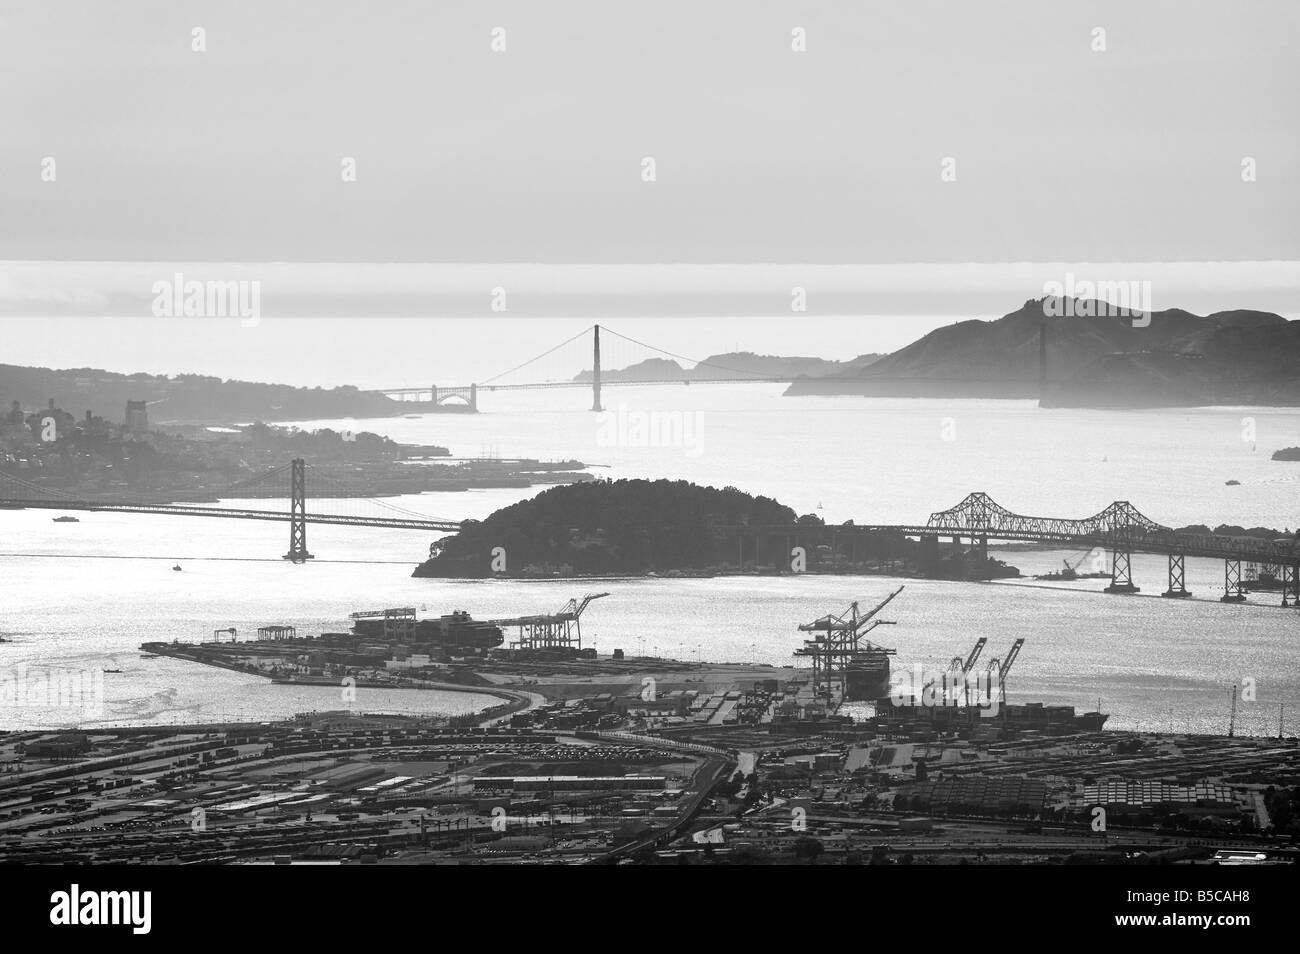 aerial view above the Port of Oakland to the Bay Bridge Treasure Island and Golden Gate bridge San Francisco bay - Stock Image